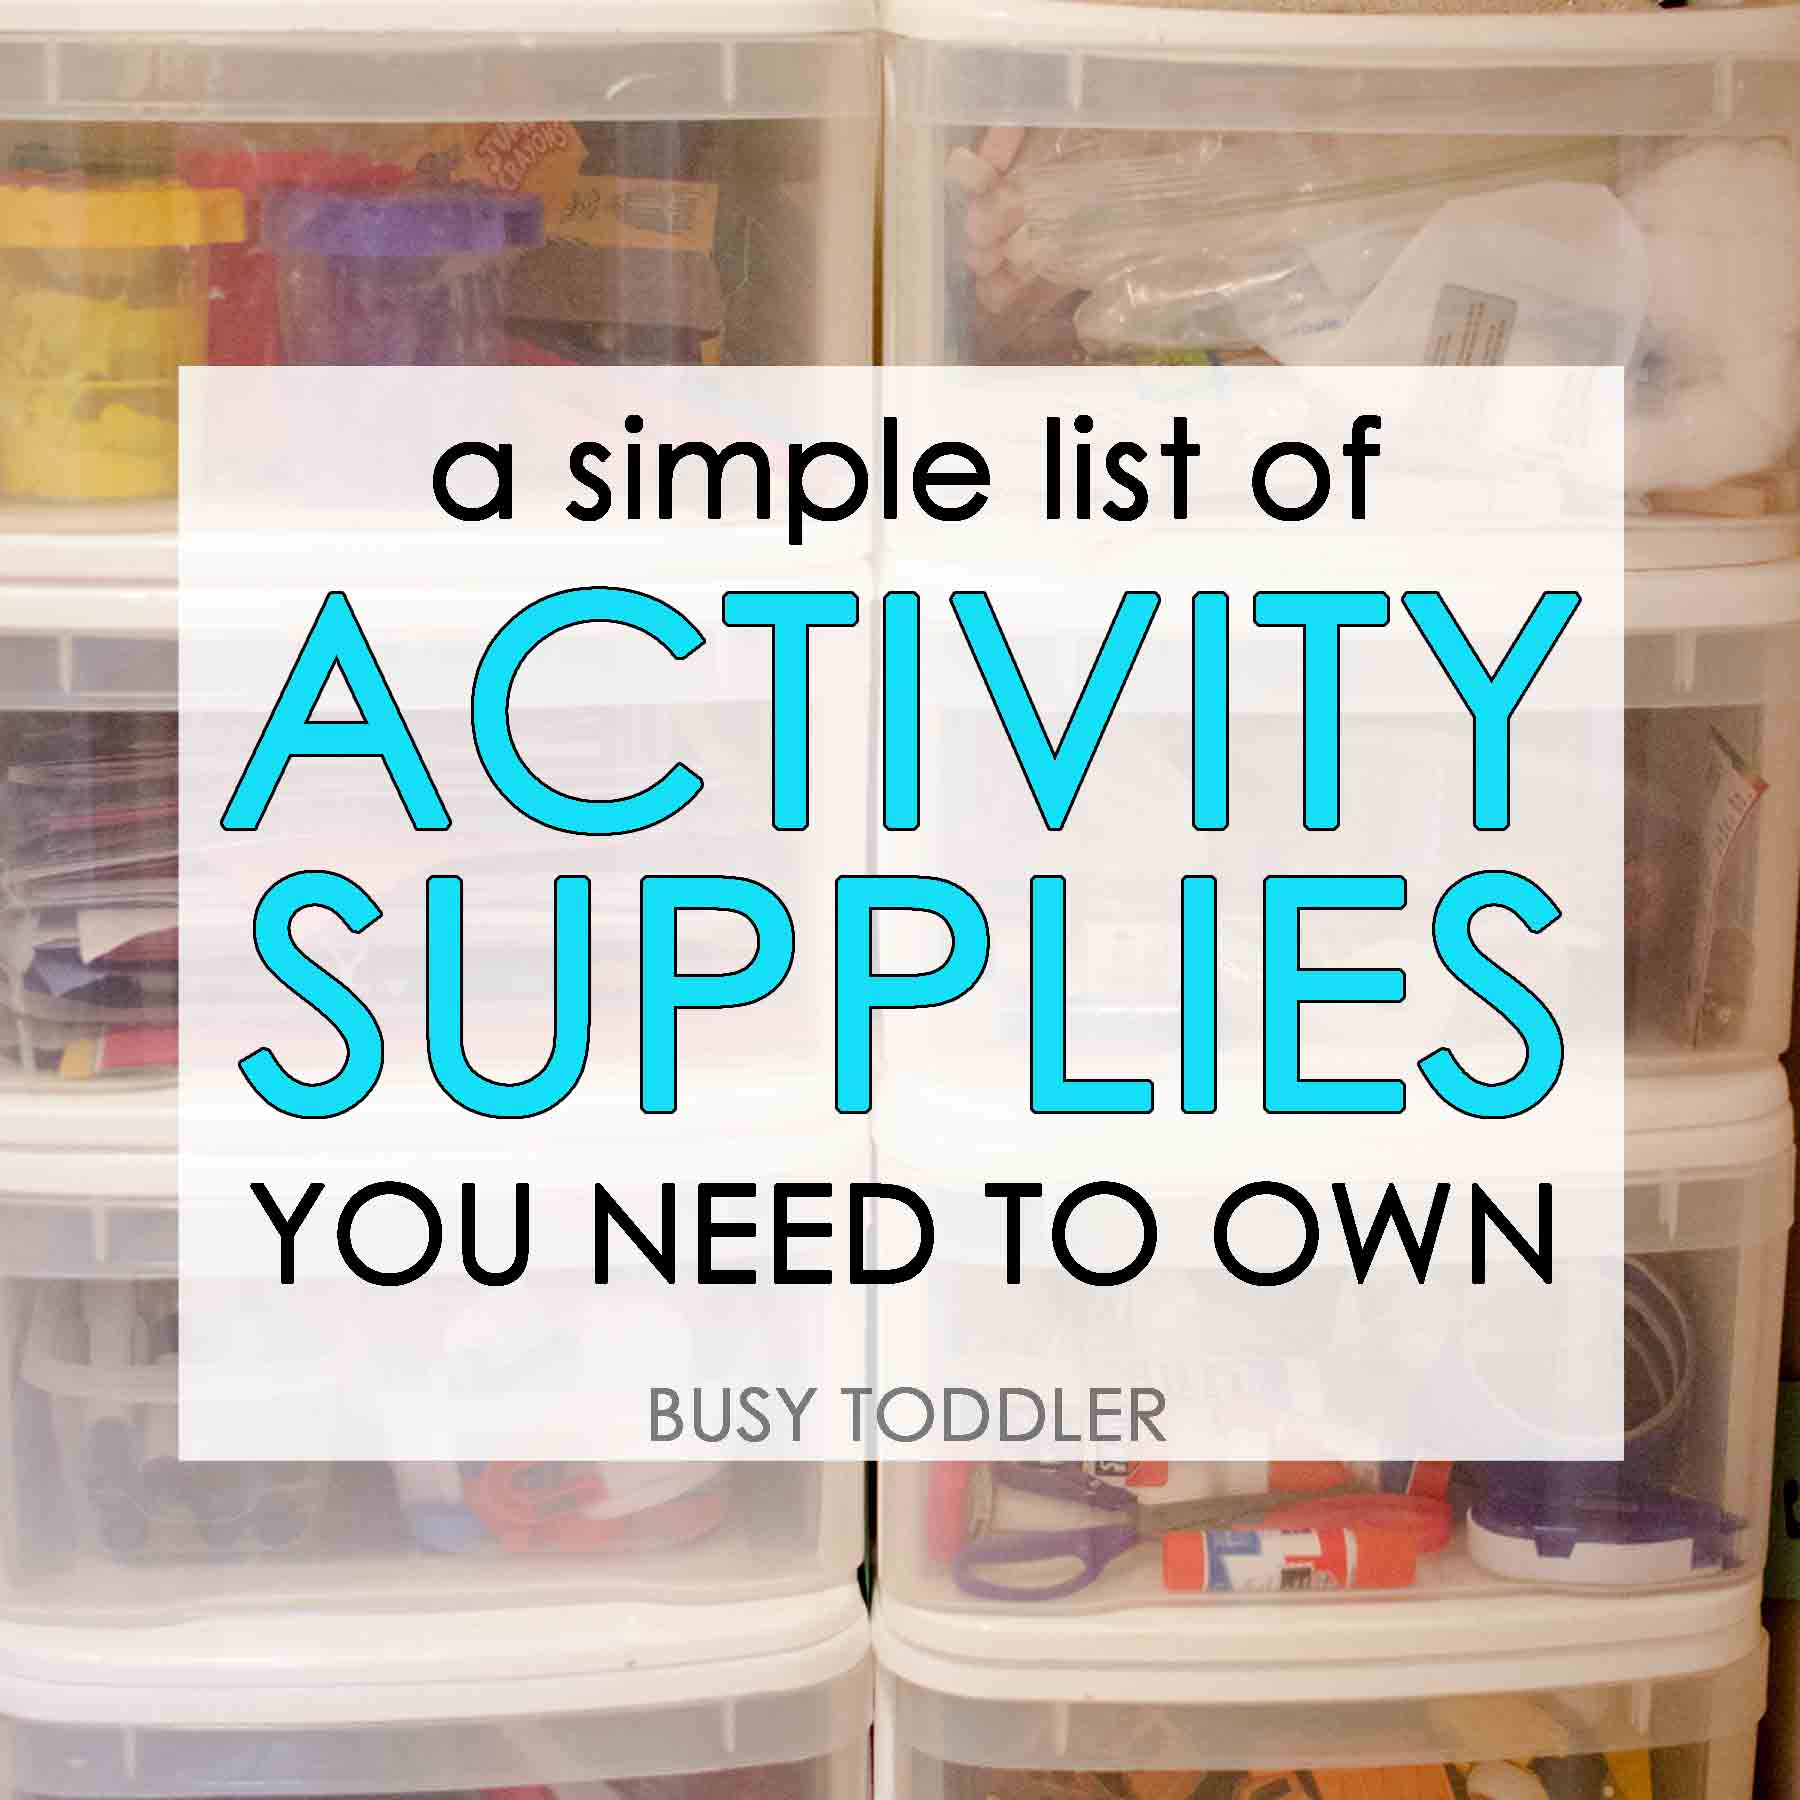 Activity Supplies You Need to Own - Busy Toddler